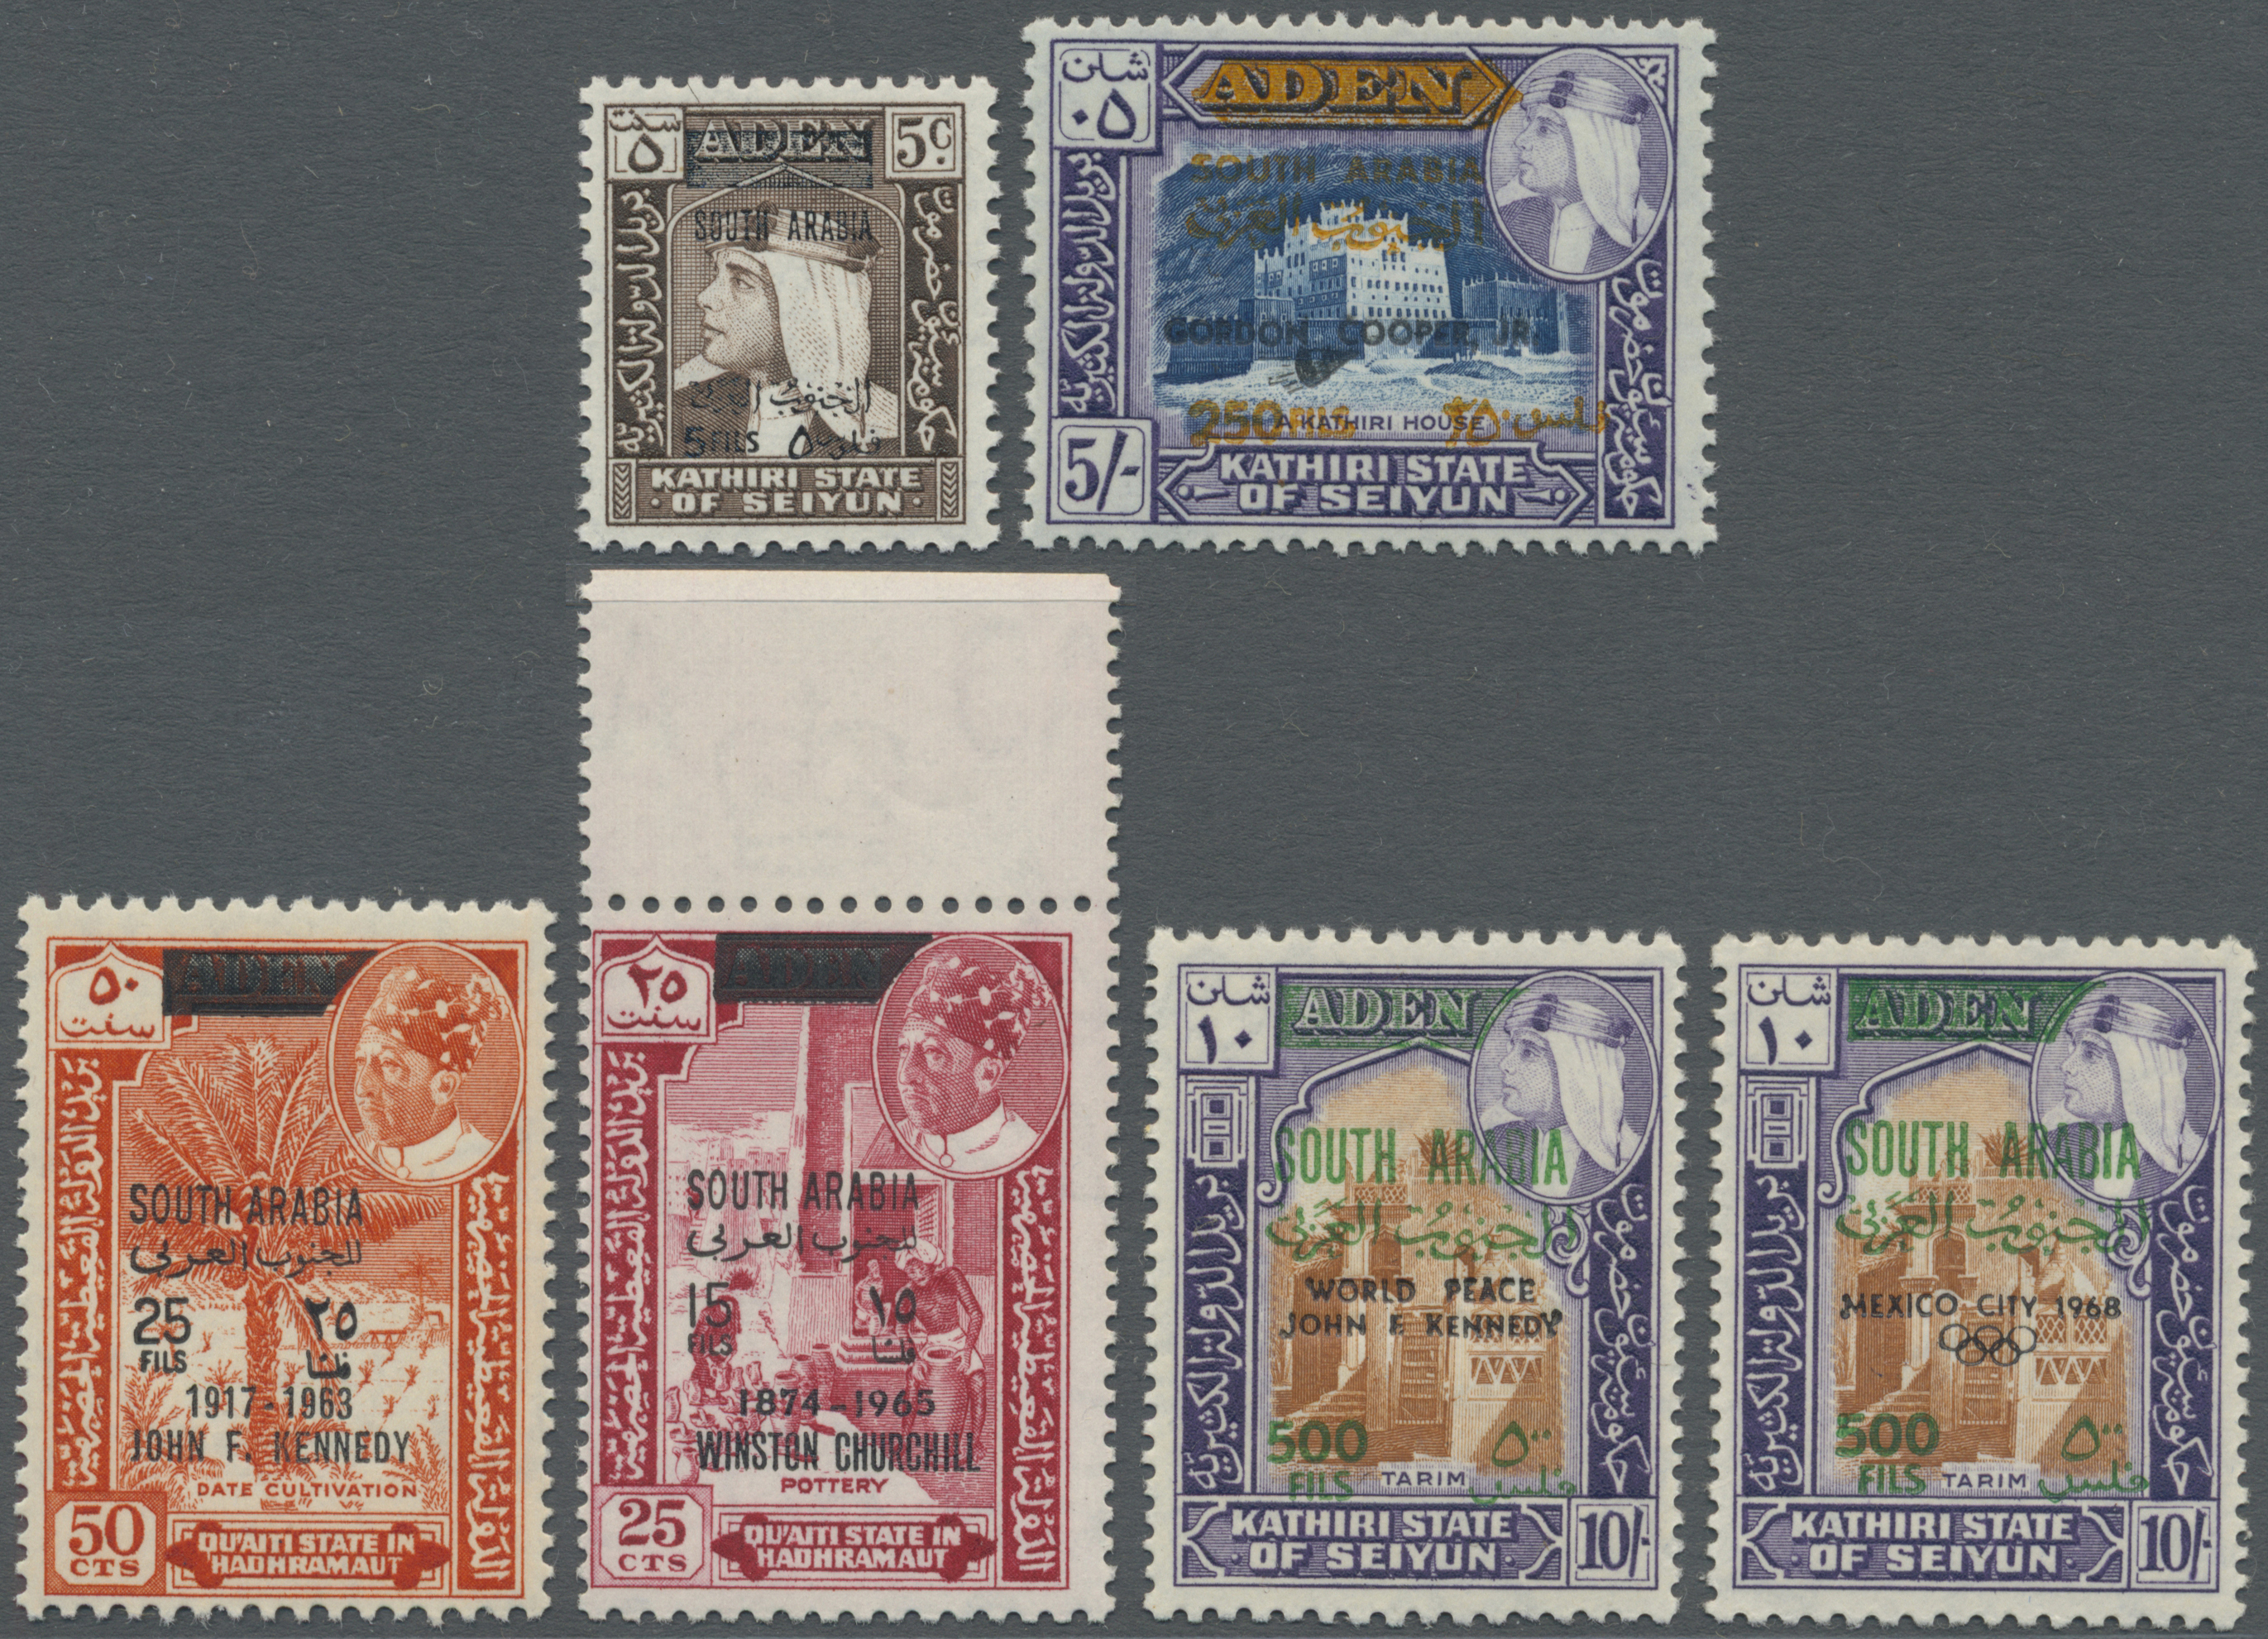 Lot 20001 - aden  -  Auktionshaus Christoph Gärtner GmbH & Co. KG Sale #46 Collections Worldwide